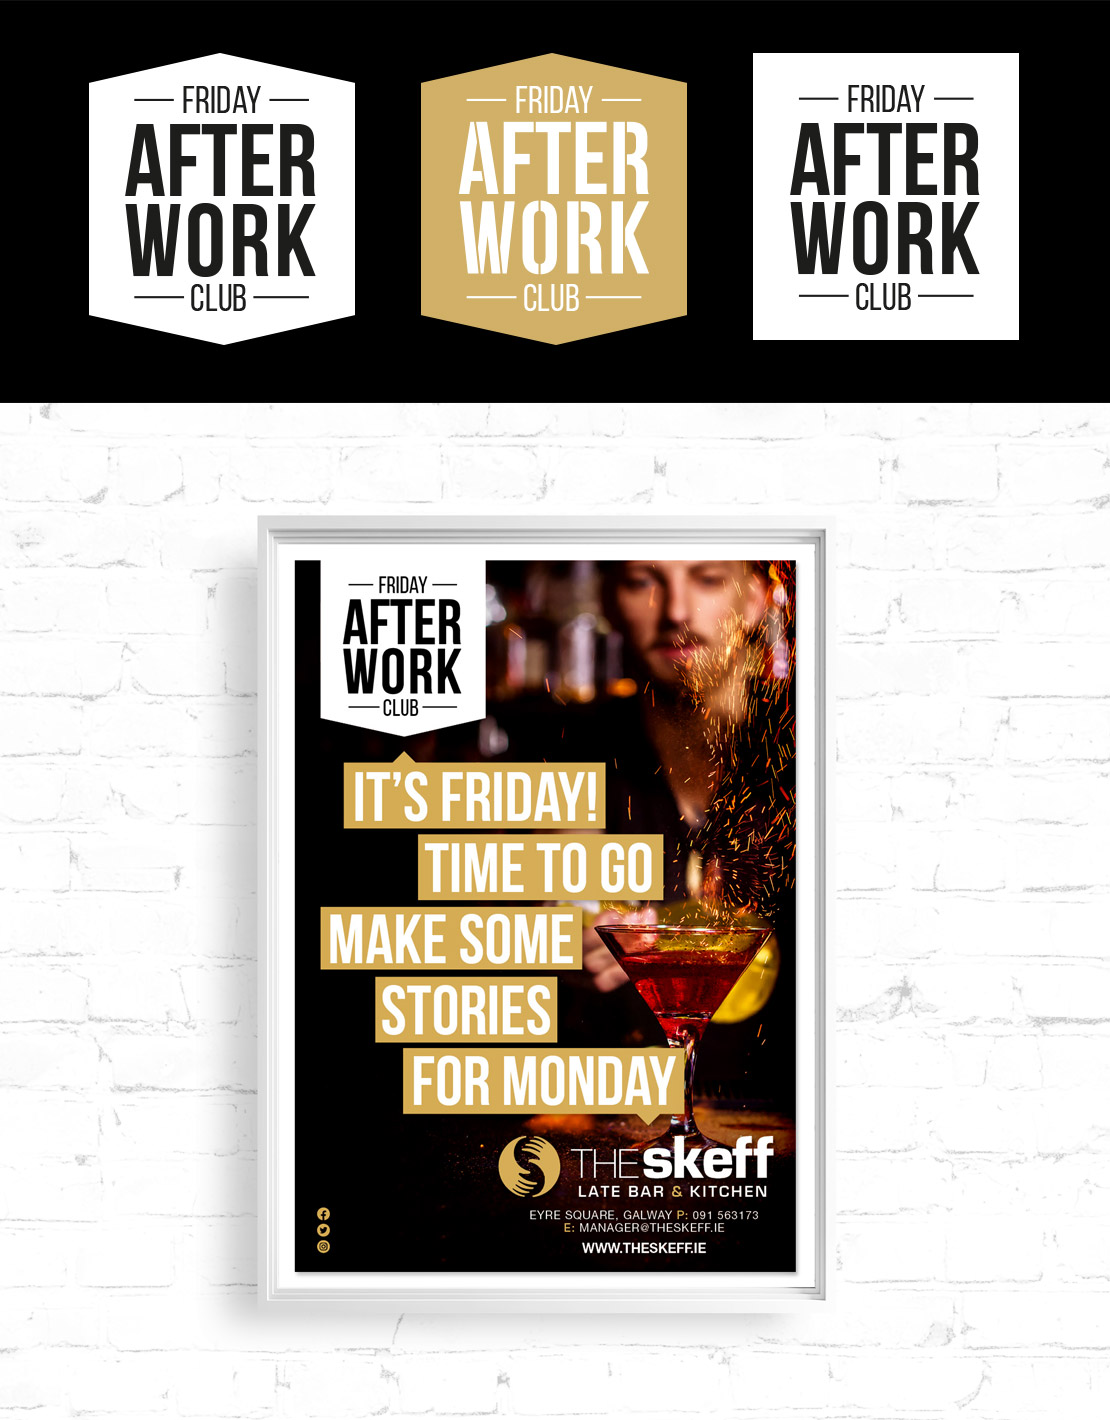 The Skeff 'Friday After Work Club' campaign logo and poster design